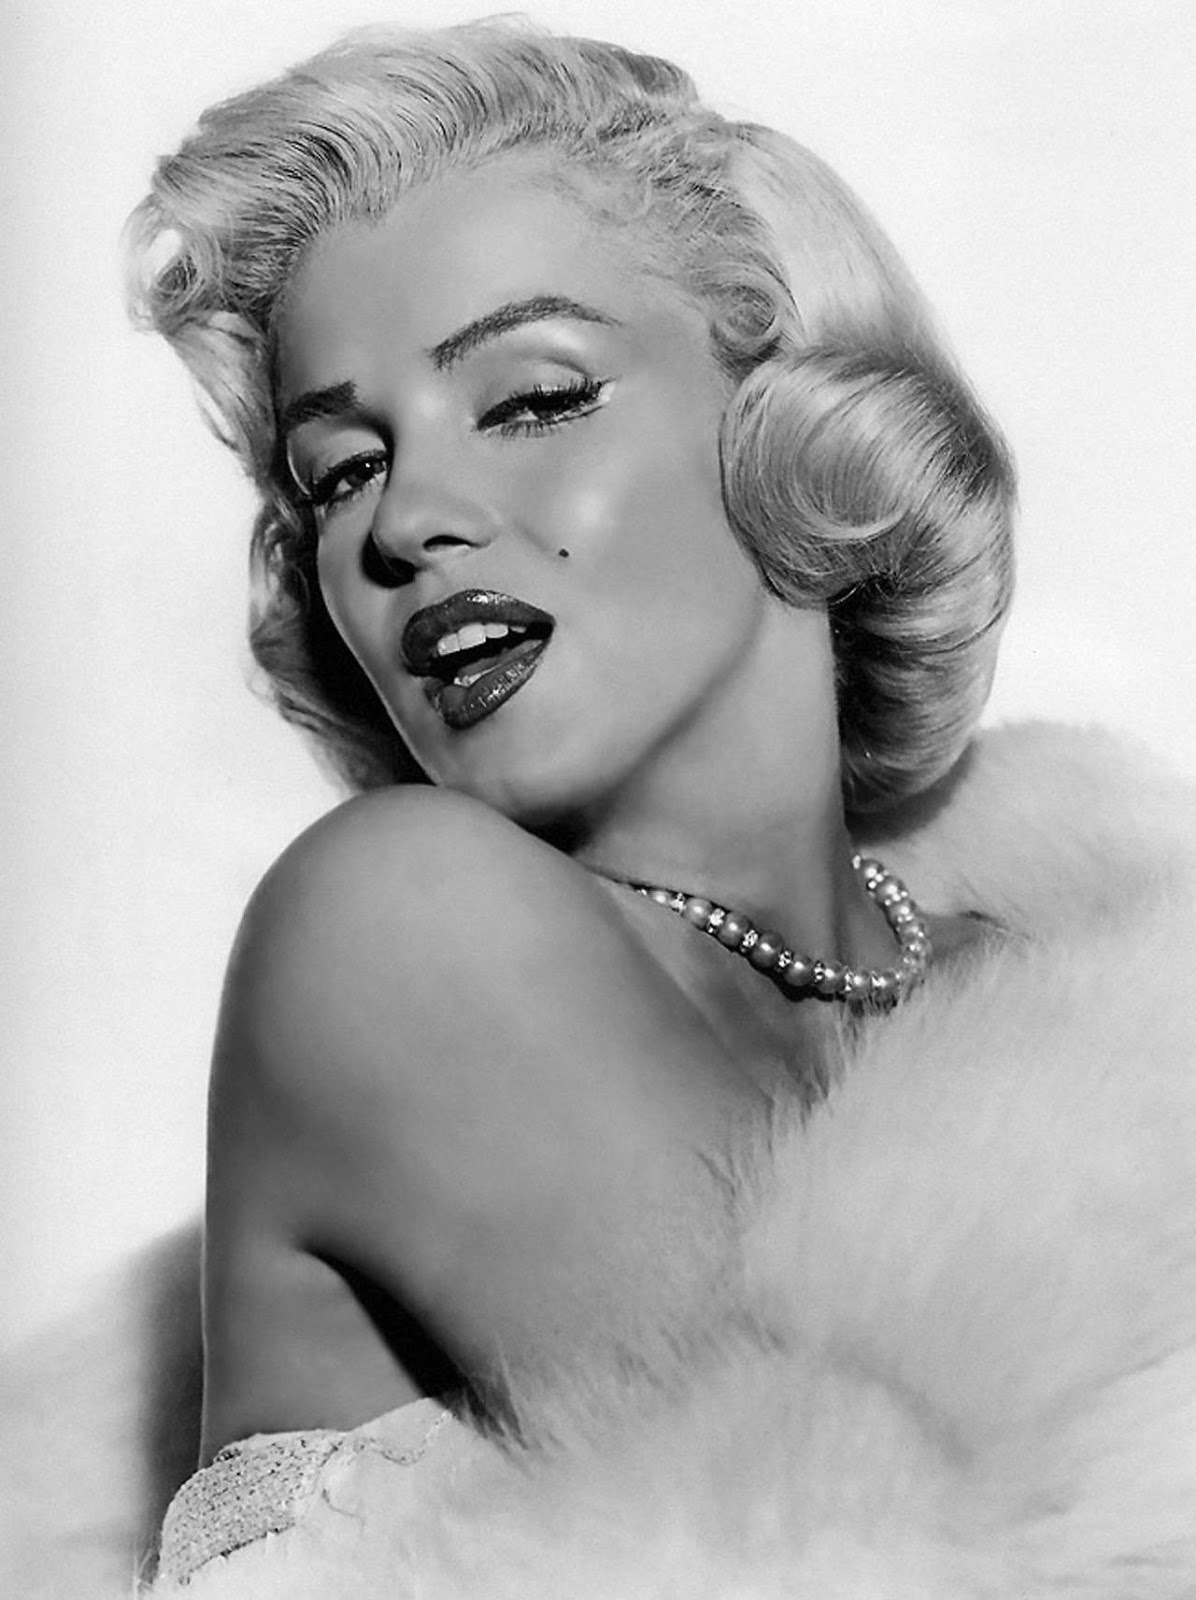 an analysis of the topic of the marilyn monroe hollywood actress She was the ultimate screen goddess, the biggest sex symbol ever to come out of hollywood and almost 50 years after her death, marilyn monroe remains an unrivalled.